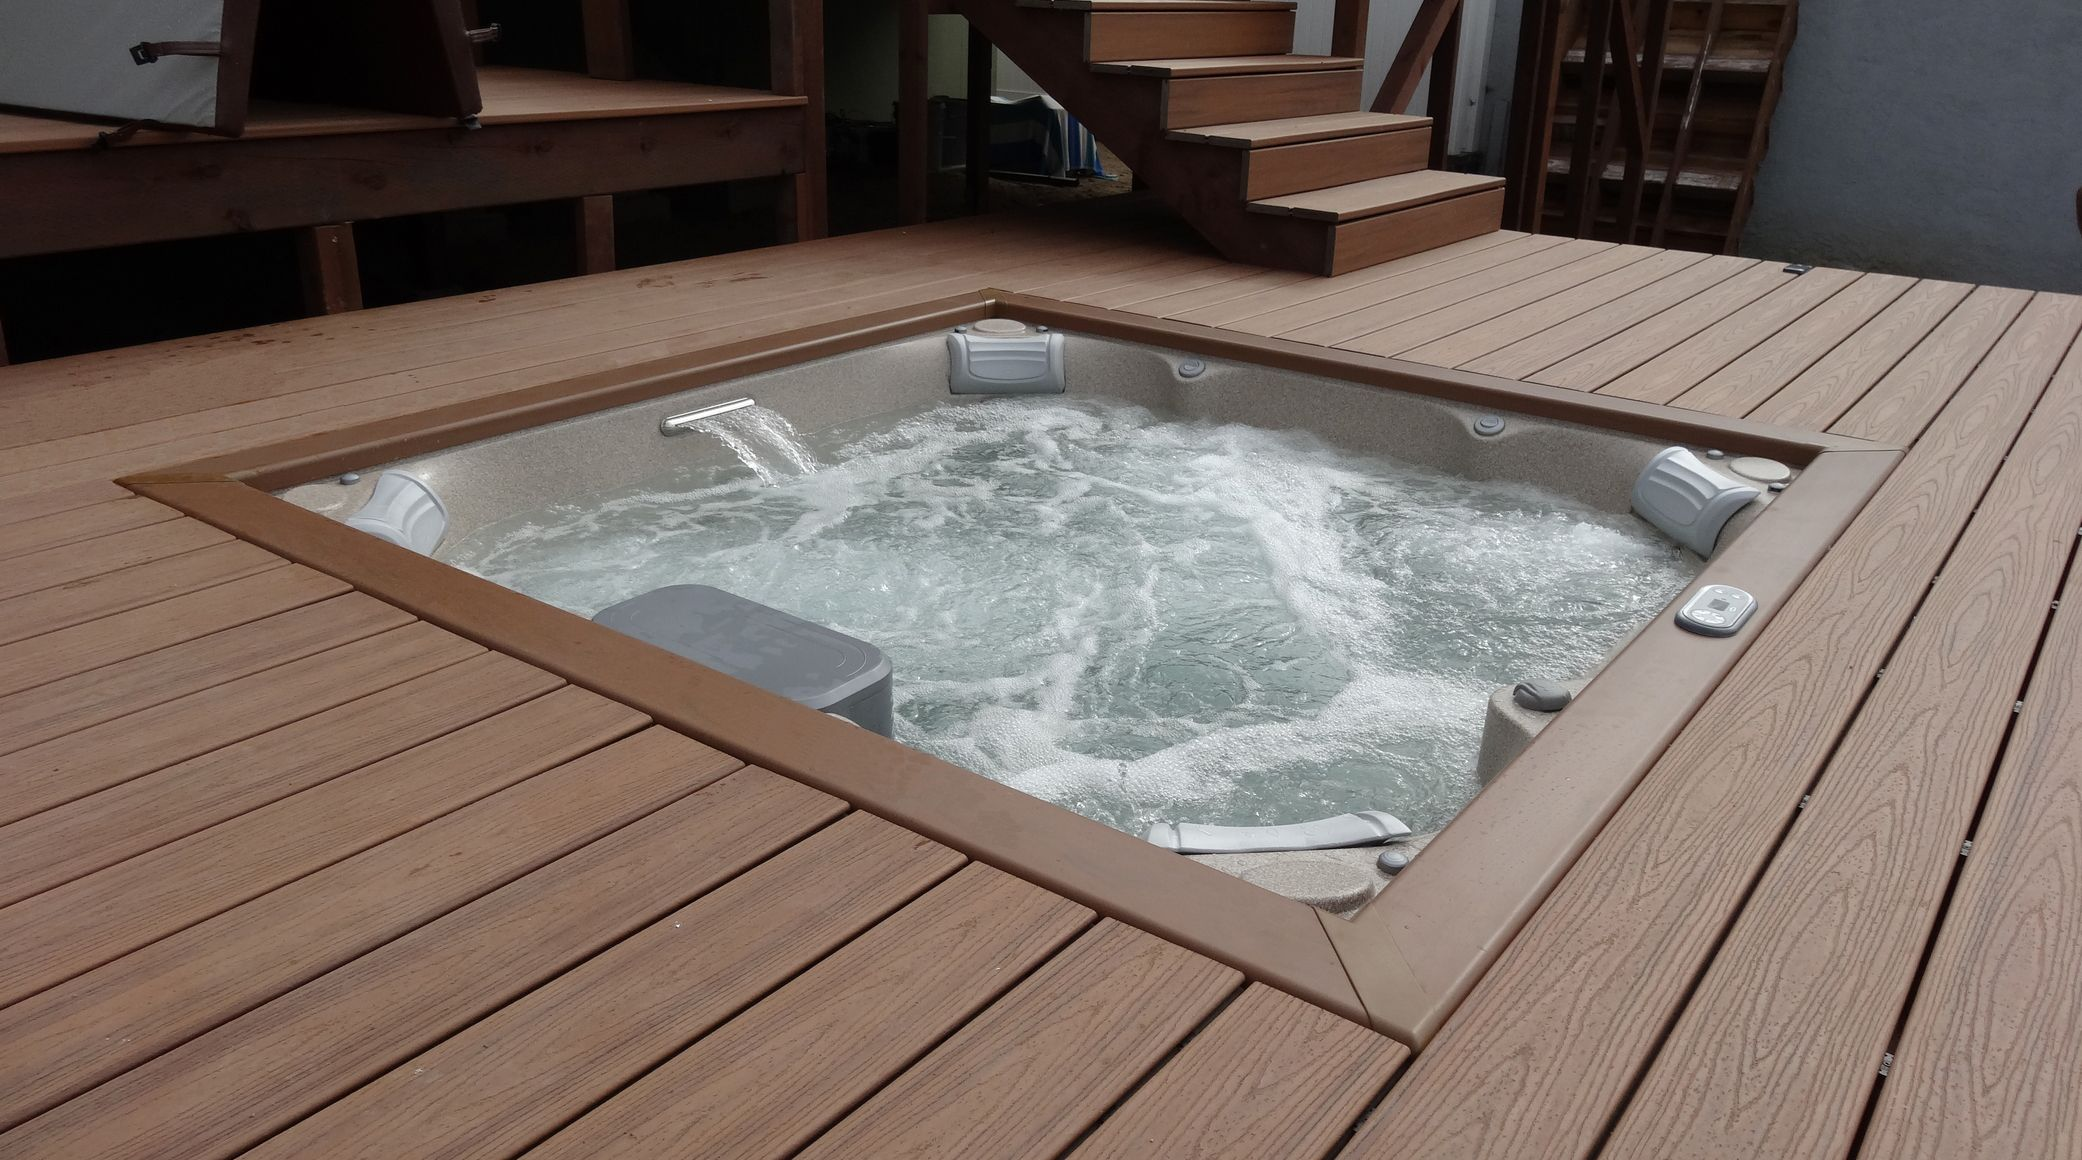 Connu Modern-looking Jacuzzi JLX spa set in deck www.gordonandgrant.com  QF98